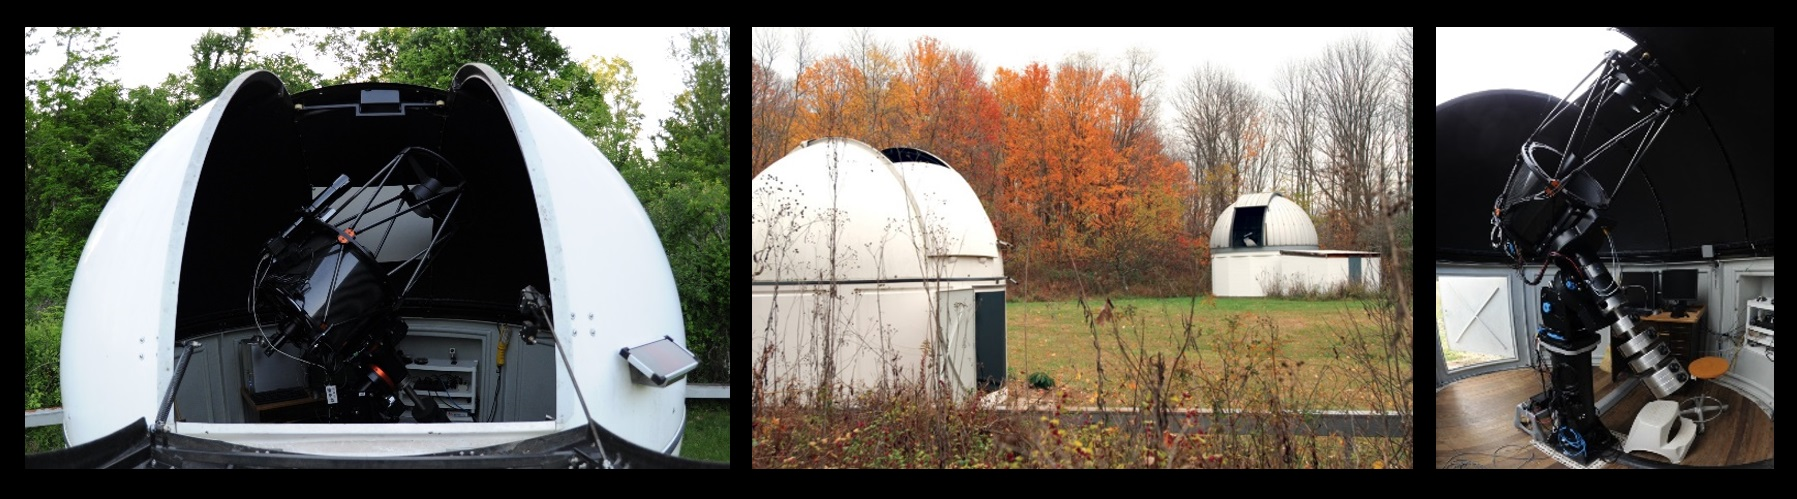 These are photos of the University of Louisville's Moore Observatory, located in Oldham County, Kentucky, just outside Louisville. These photos are from the observatory's web page. The telescope seen here is a Planewave Instruments 20-inch (0.5-meter) f/6.8 corrected Dall-Kirkham telescope. It has an identical companion at Mt. Kent Observatory in Queensland, Australia. There are other instruments at Moore Observatory as well.